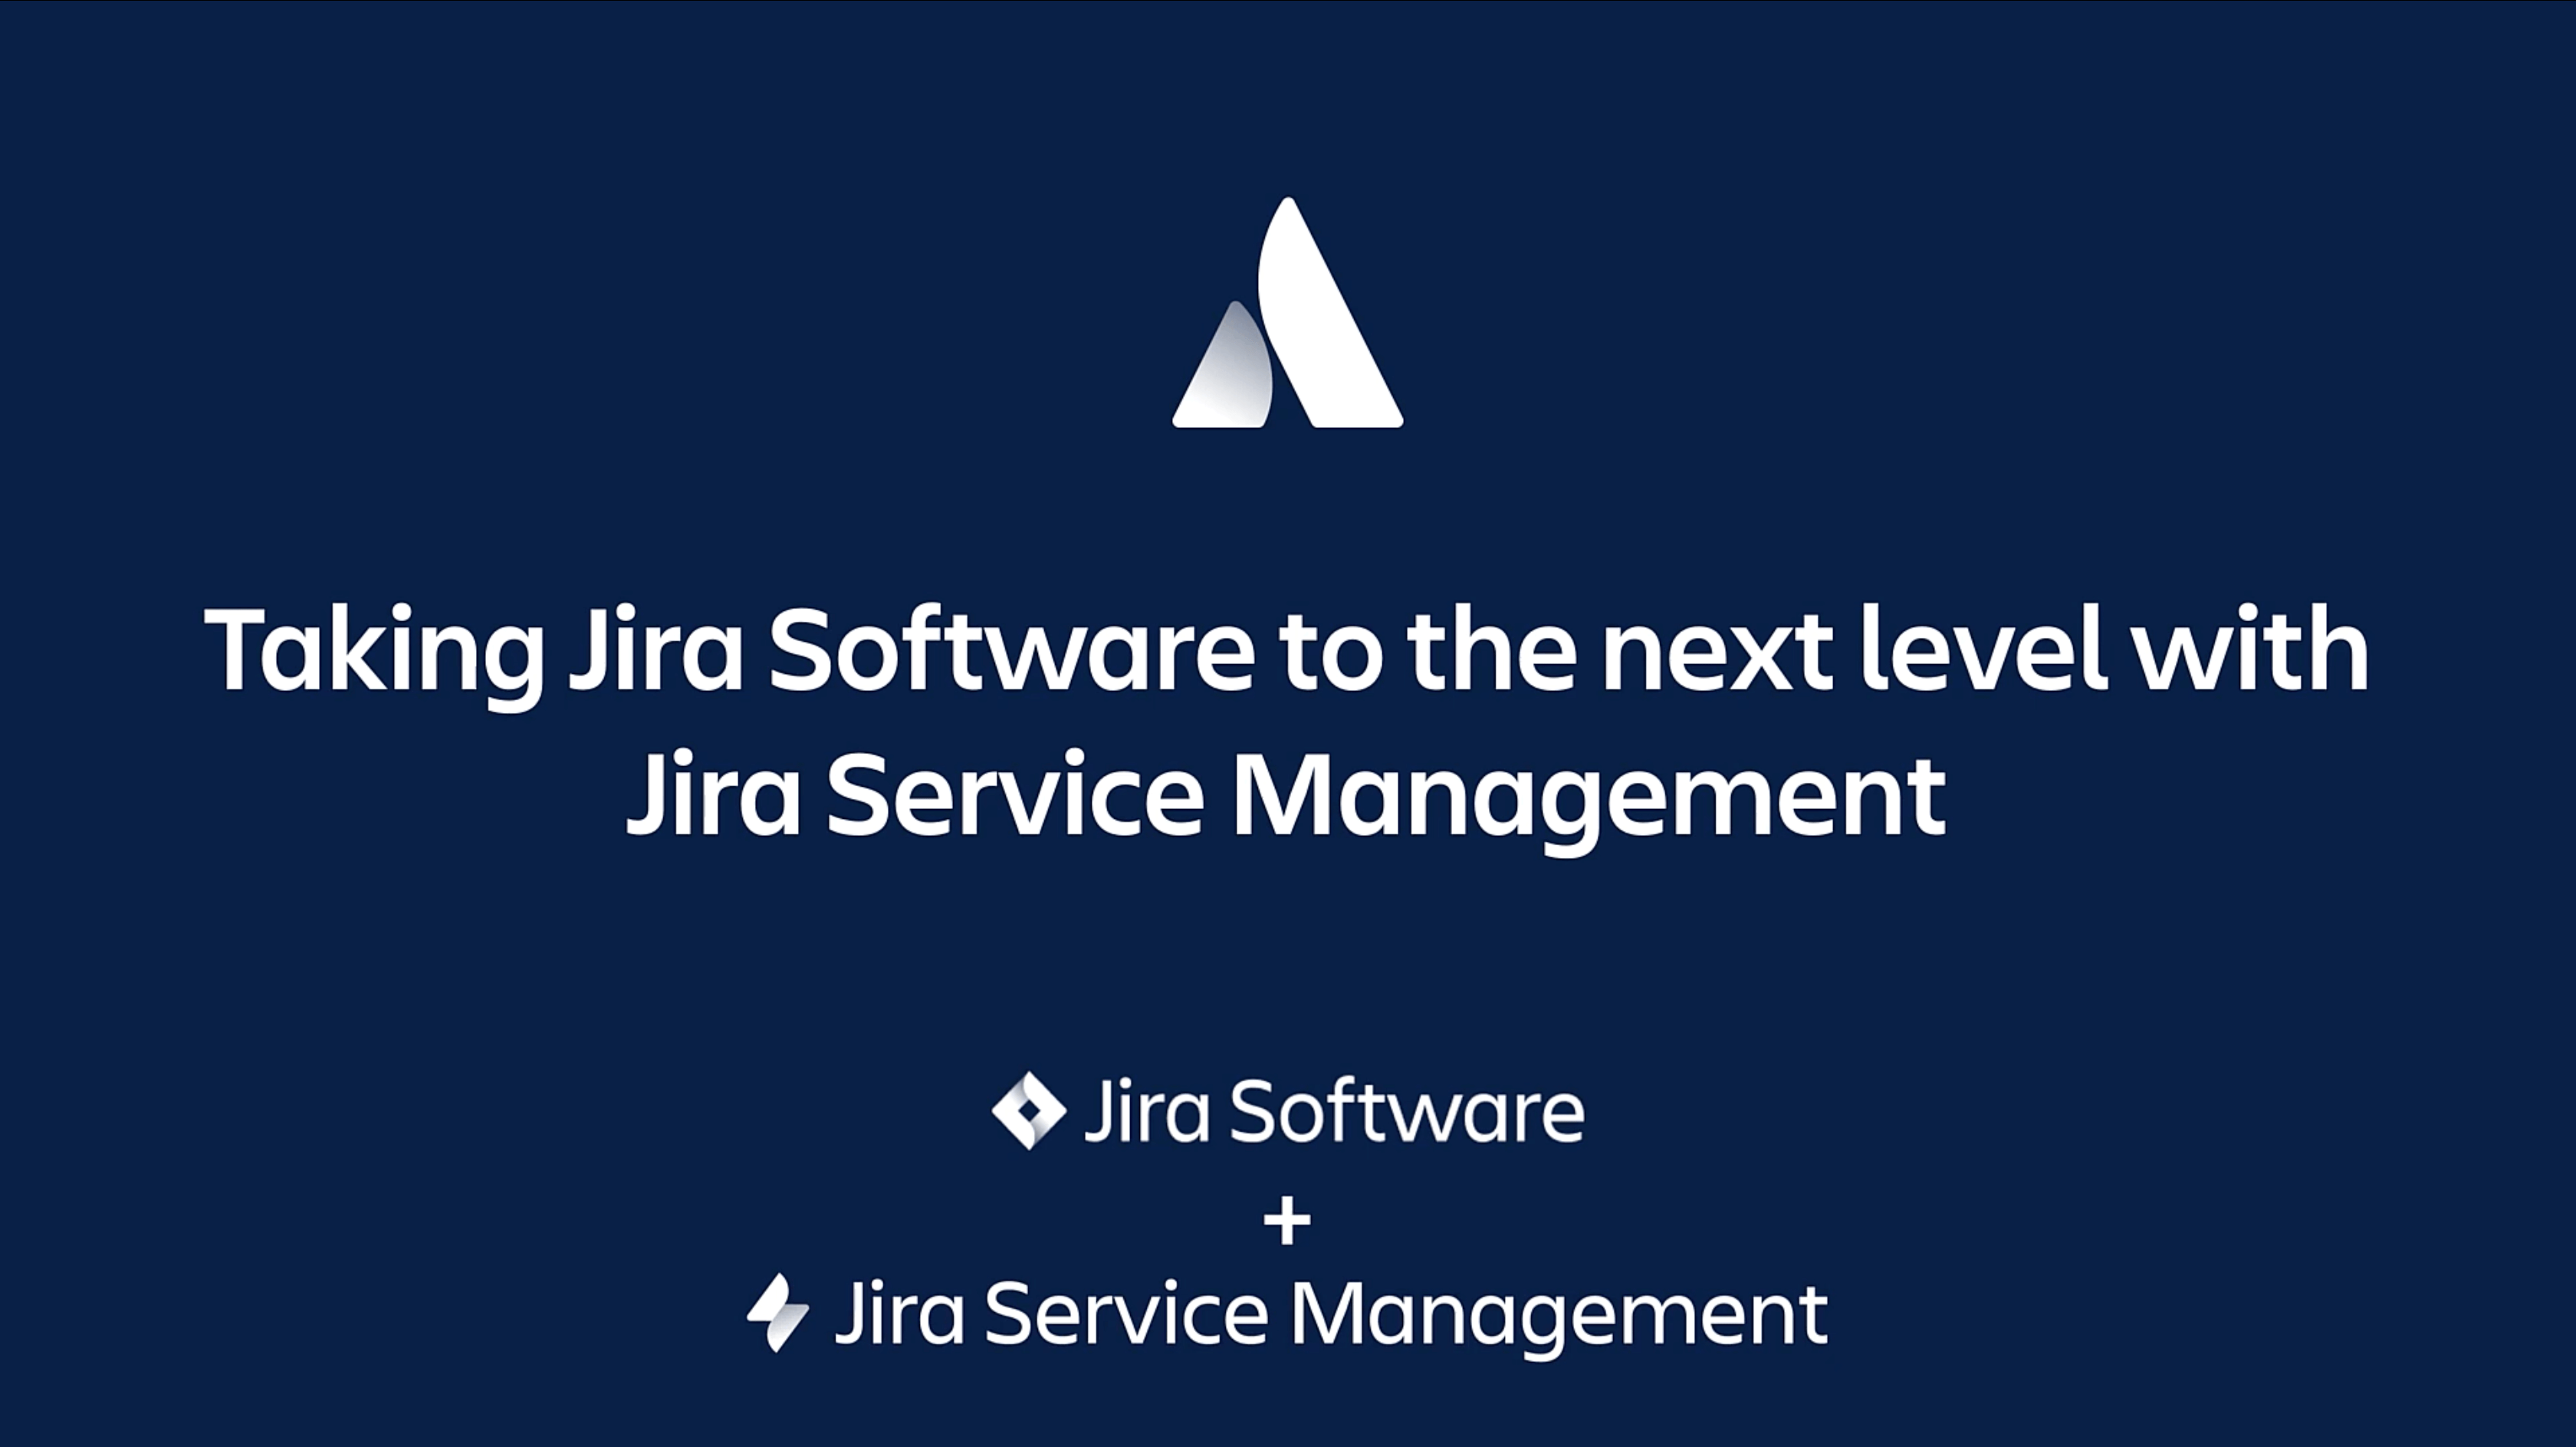 Taking Jira Software to the next level with Jira Service Management